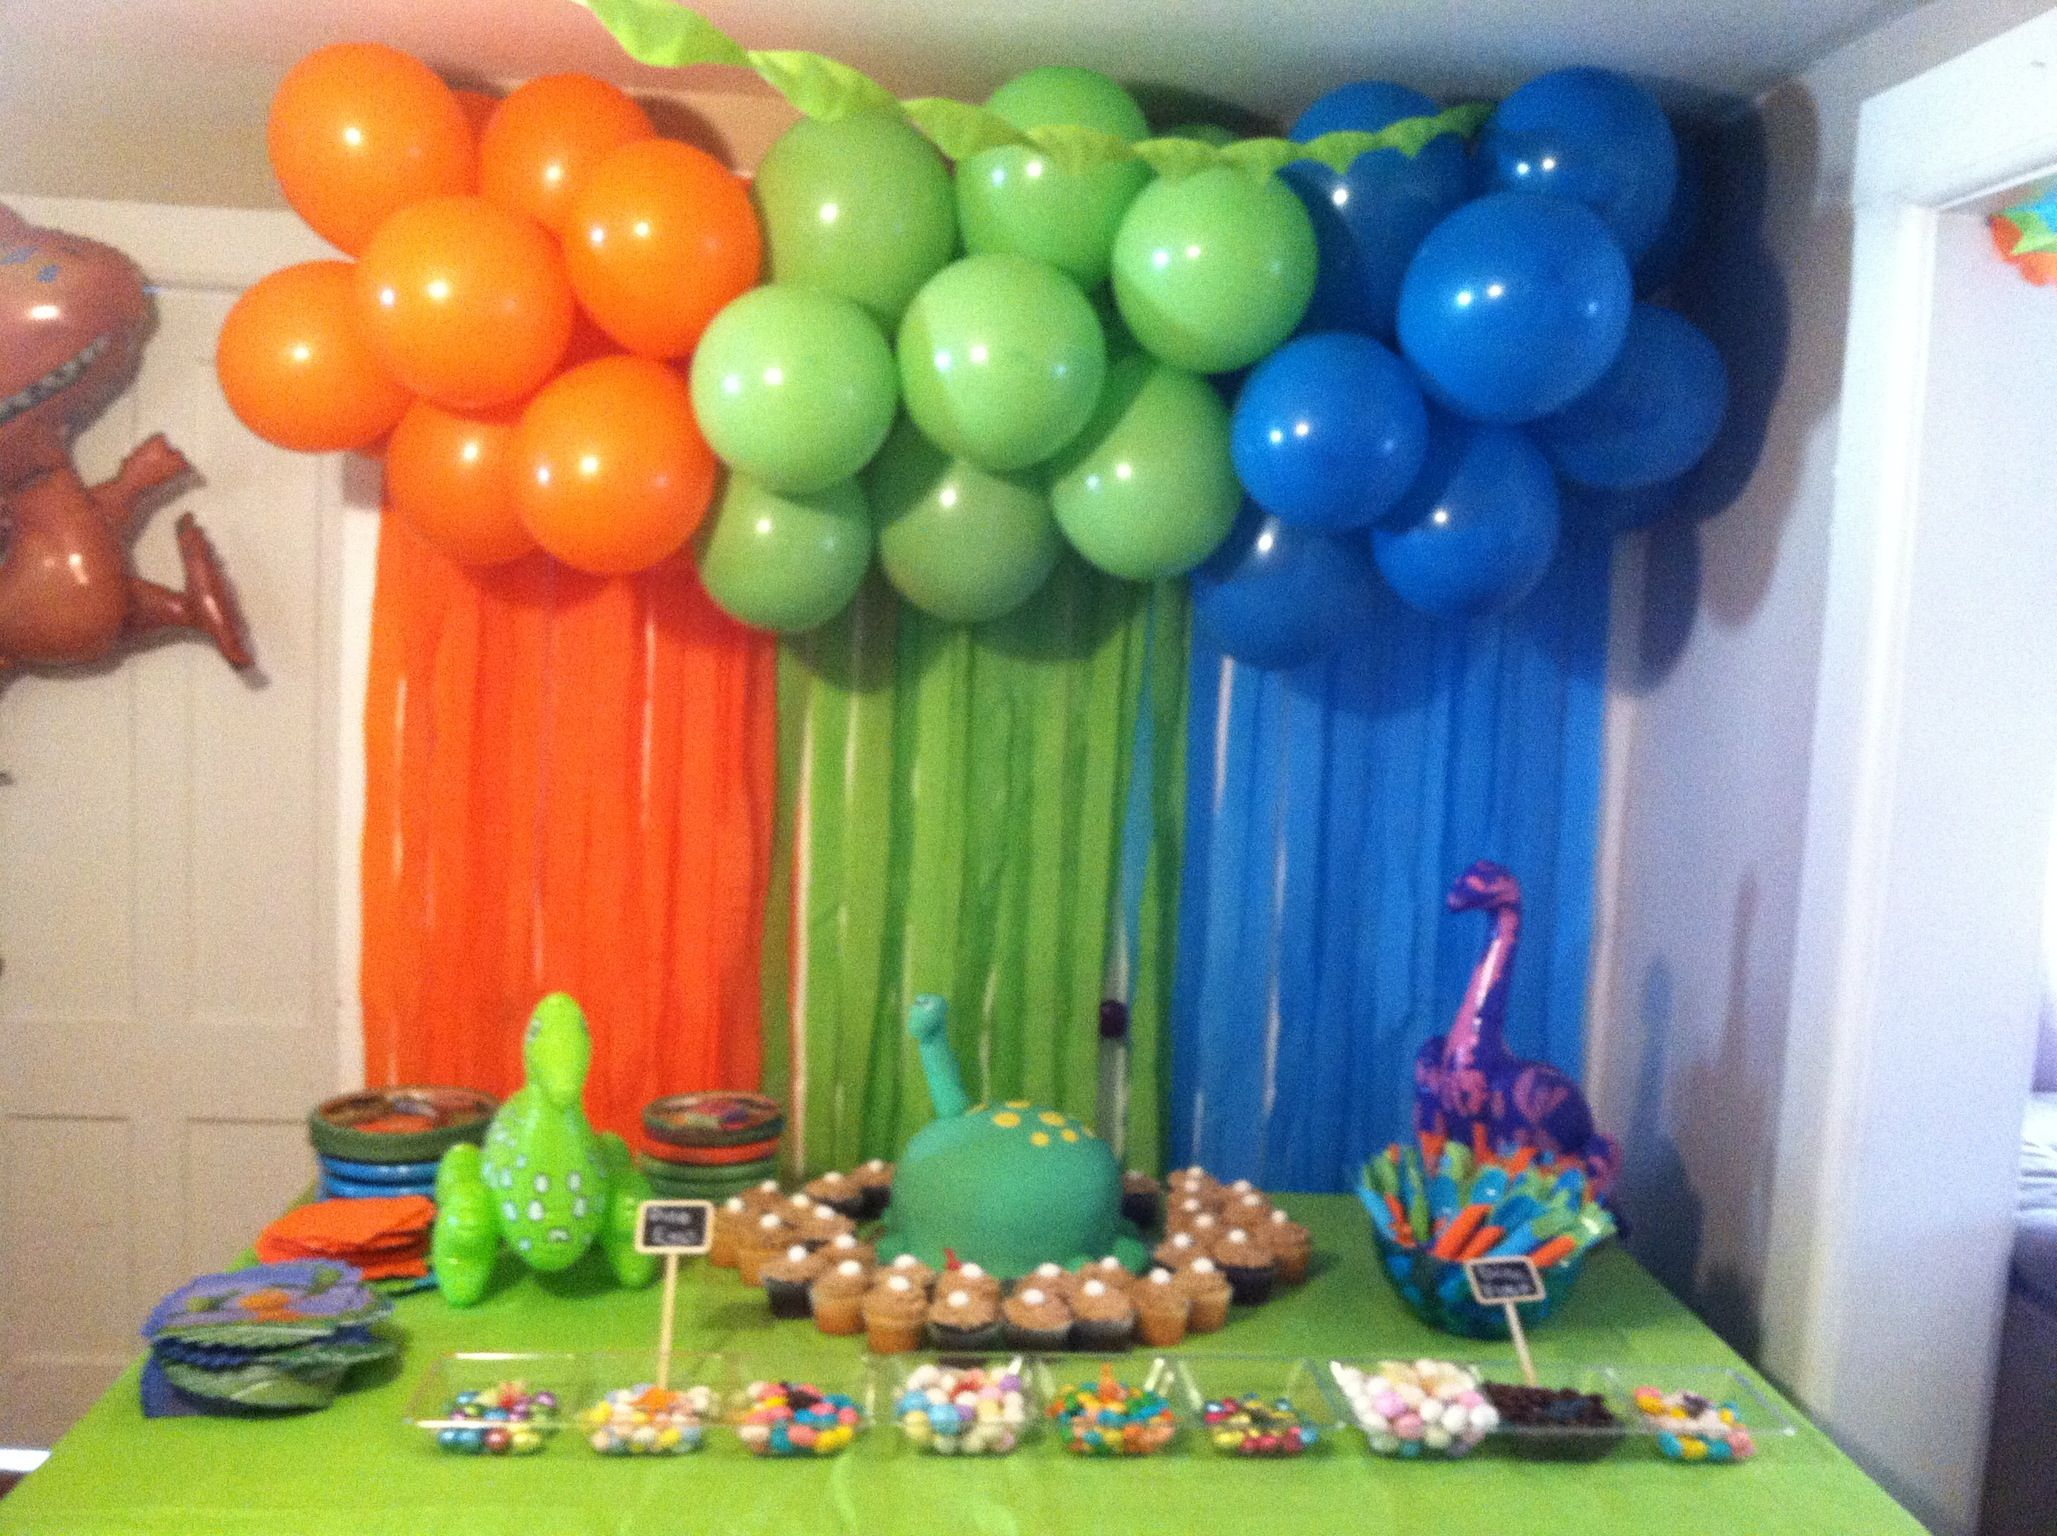 This was for my sons 3rd bday party Dinosaur train theme Anything